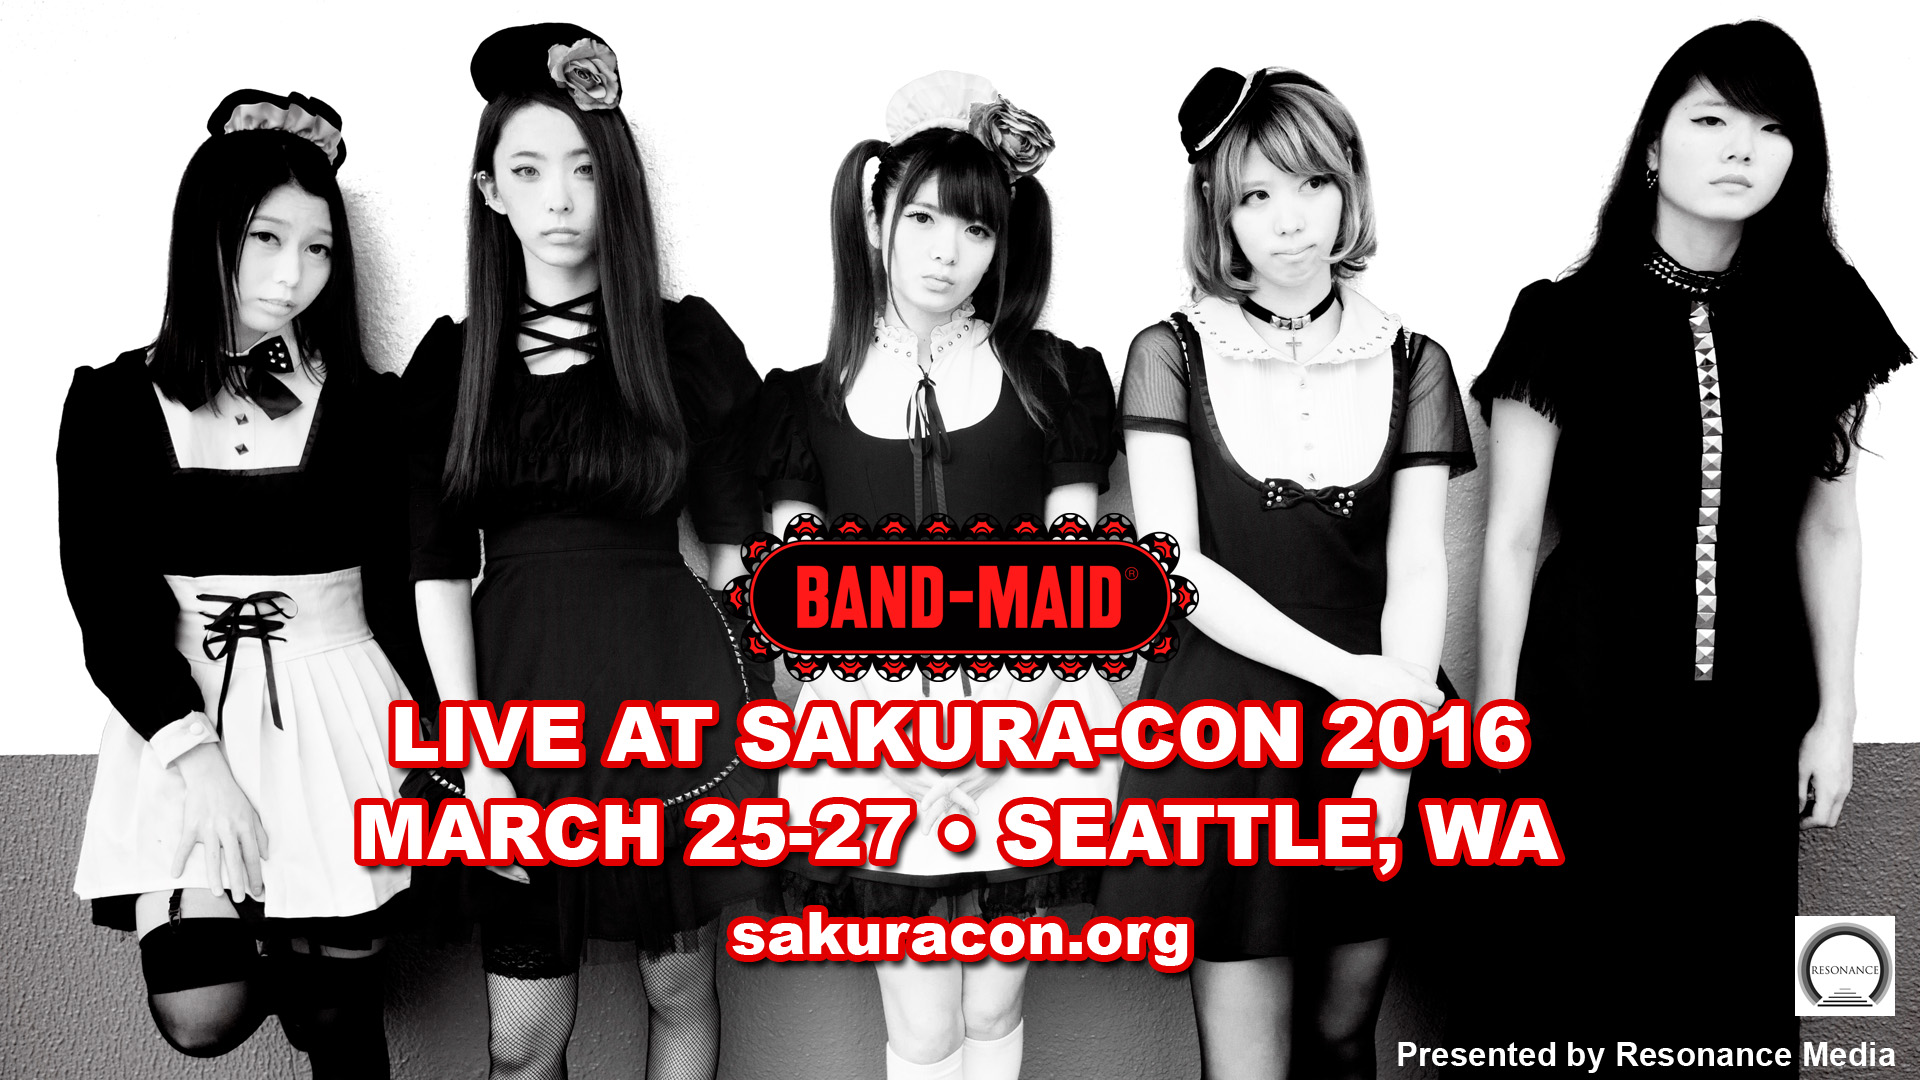 RMMS-Sakura-Con-BAND-MAID-comment-2016-A